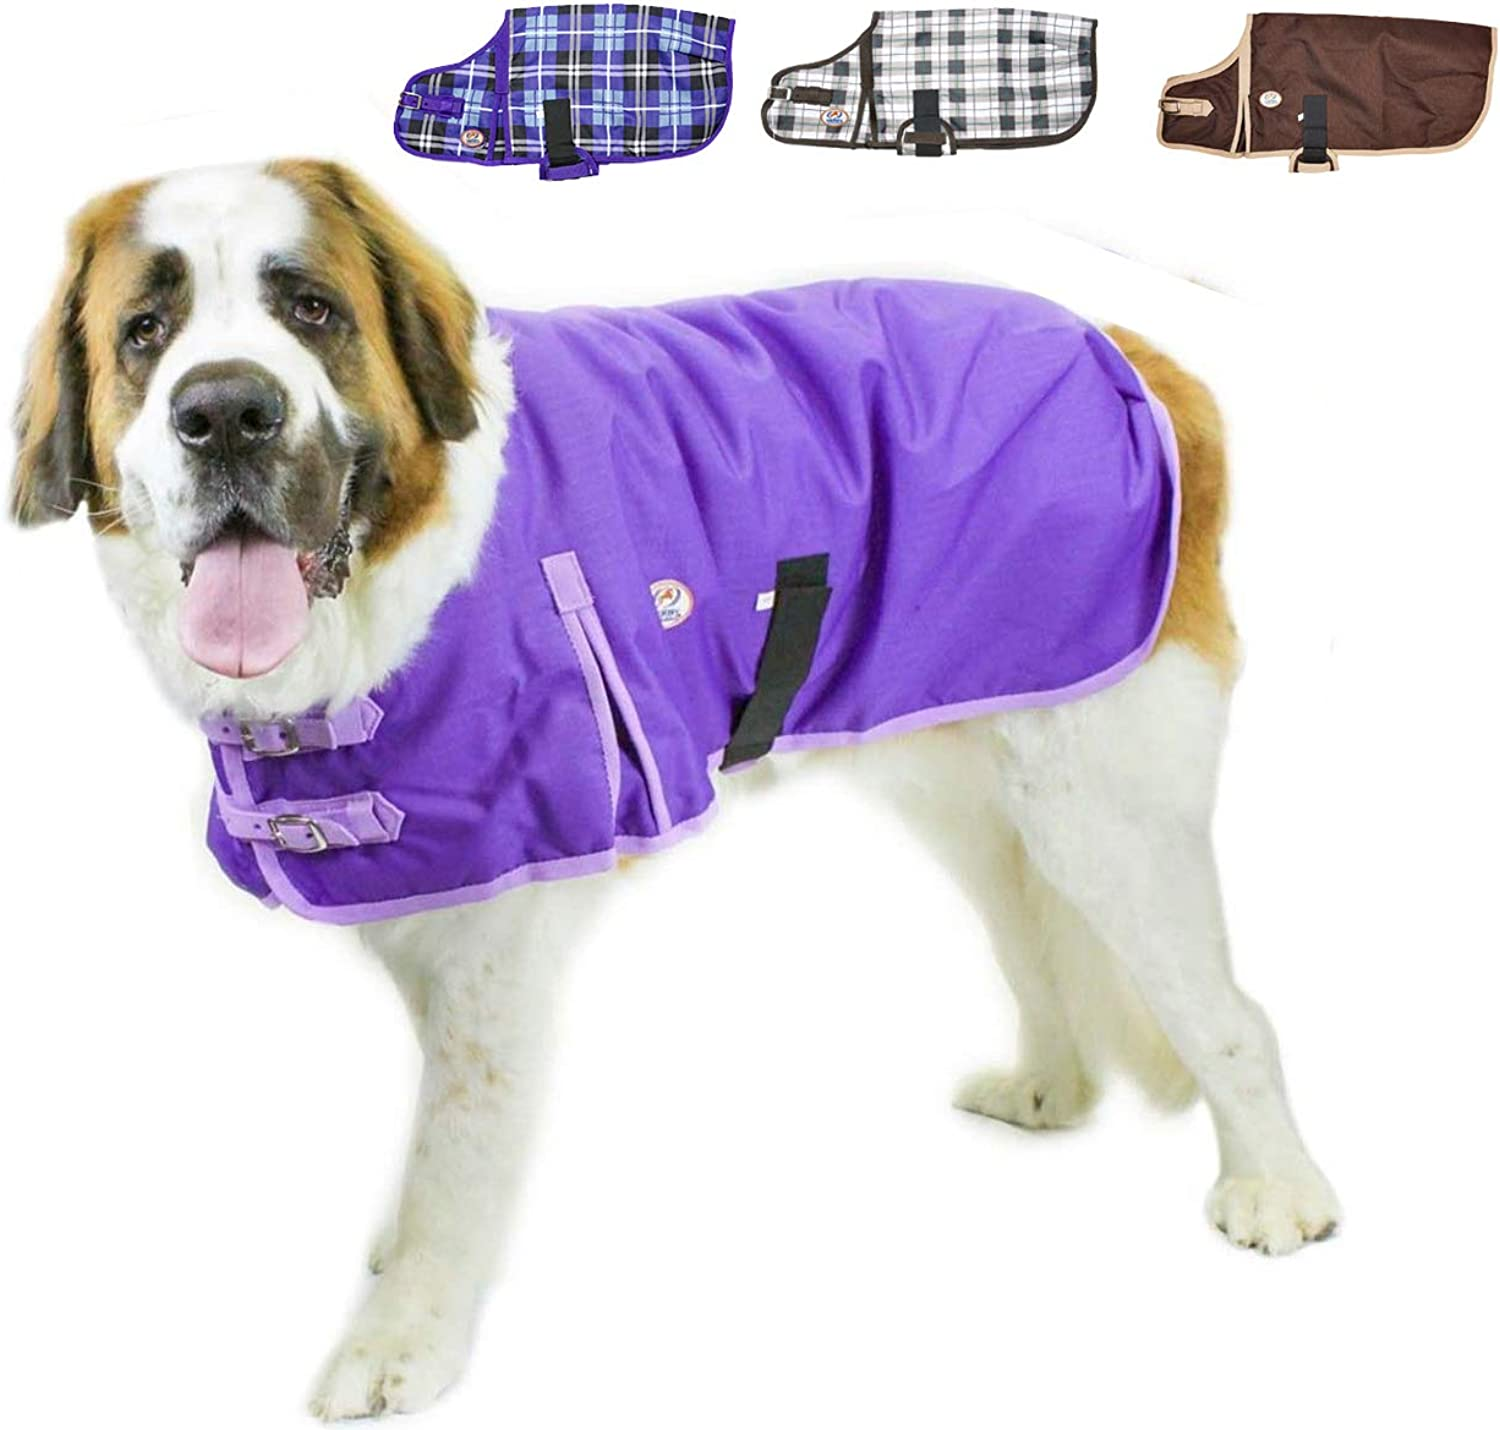 Derby Originals HorseTough 1200D Waterproof Ripstop Nylon Winter Dog Coat 150g Polyfil with Two Year Warranty